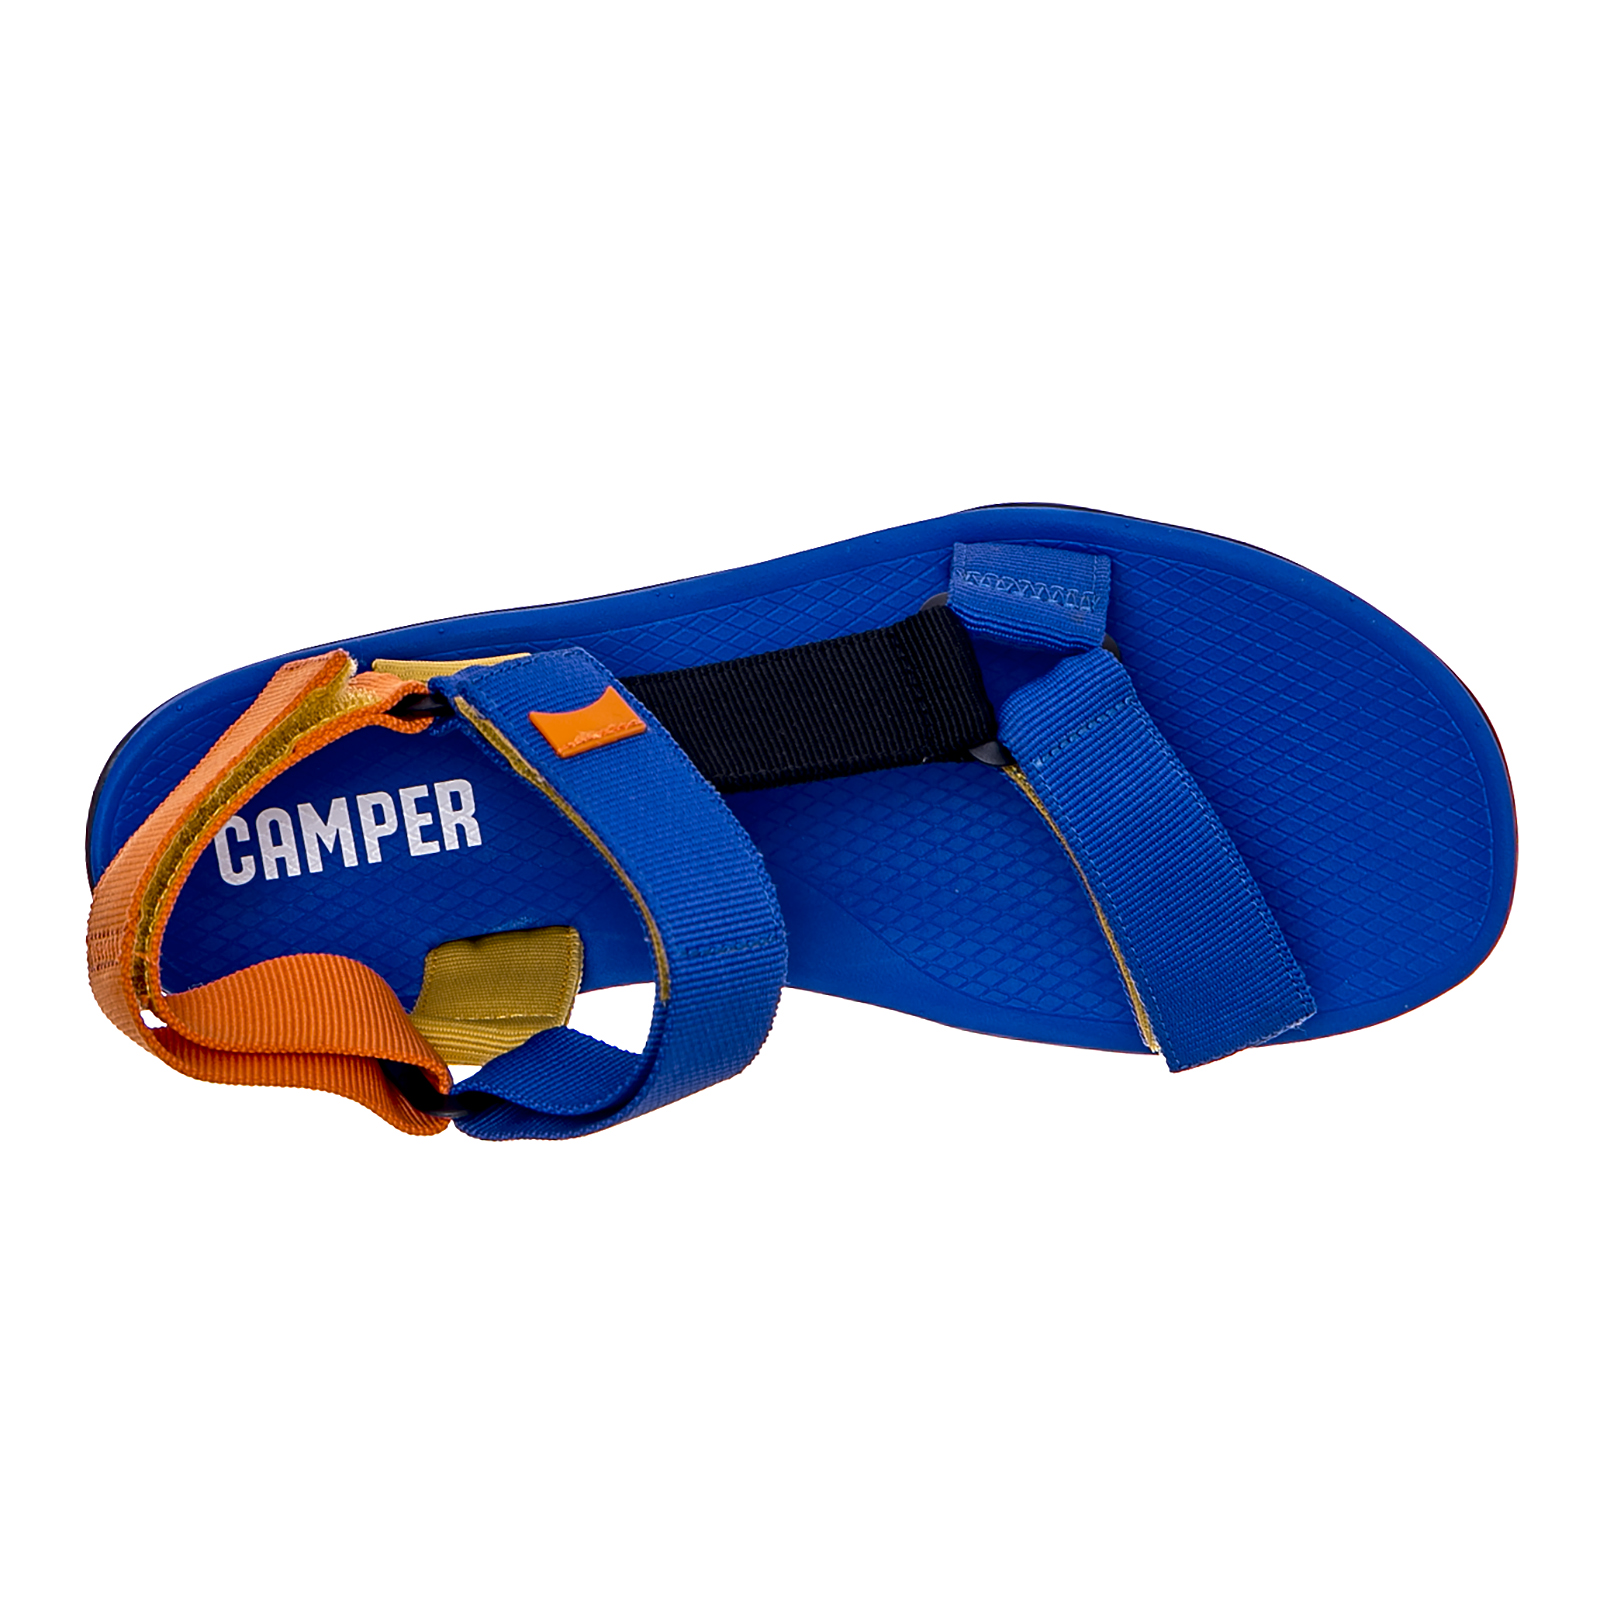 Camper-Sandali-Match-Multicolor